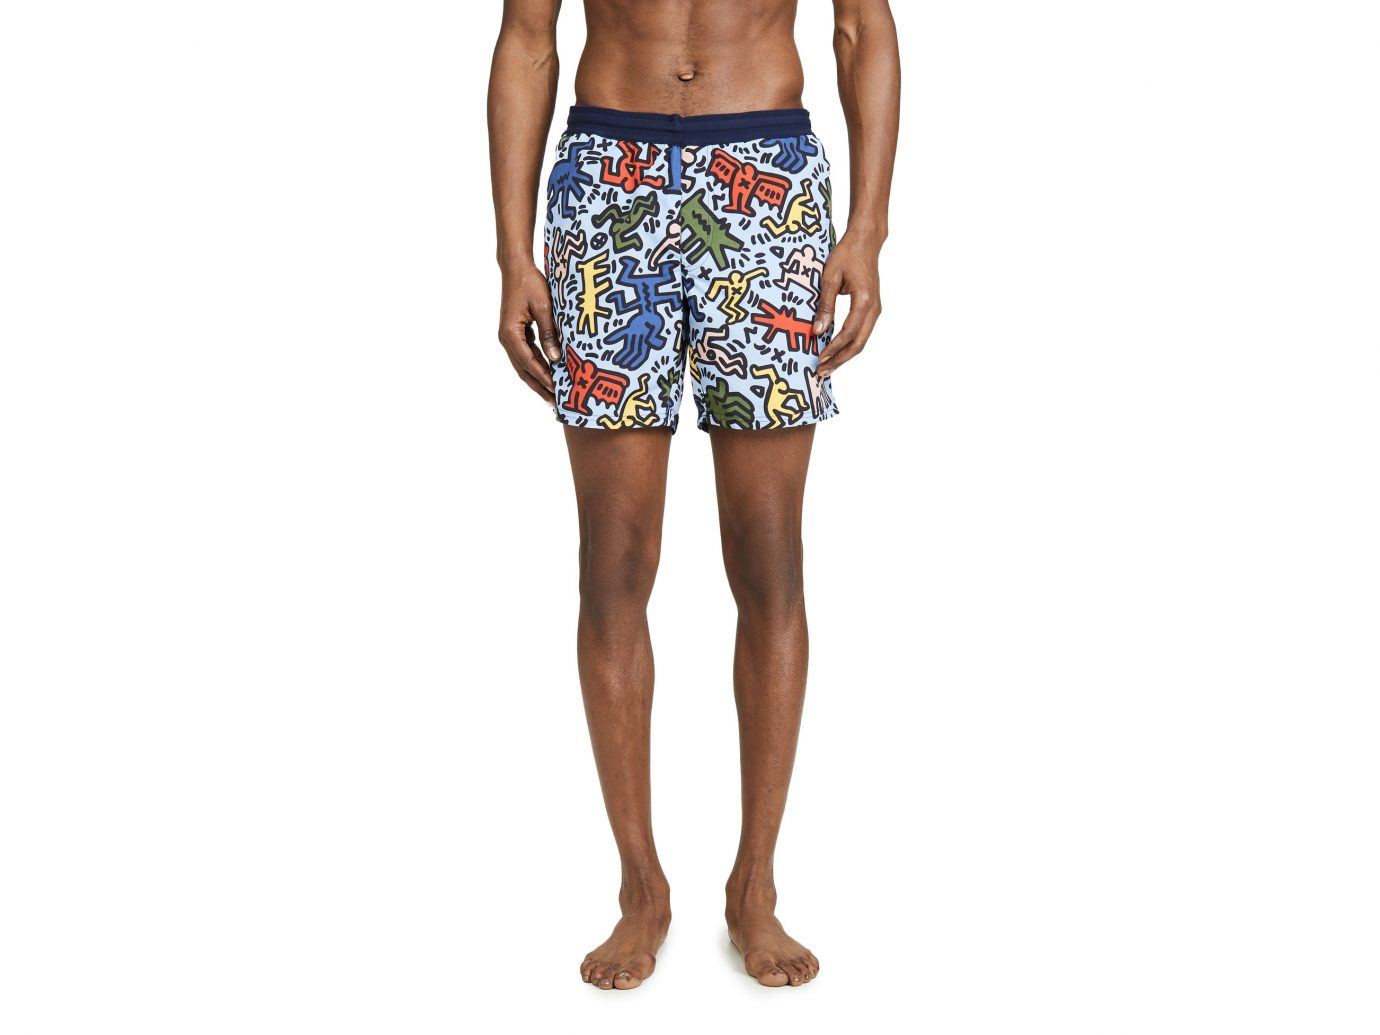 Lacoste x Keith Haring Boardshorts